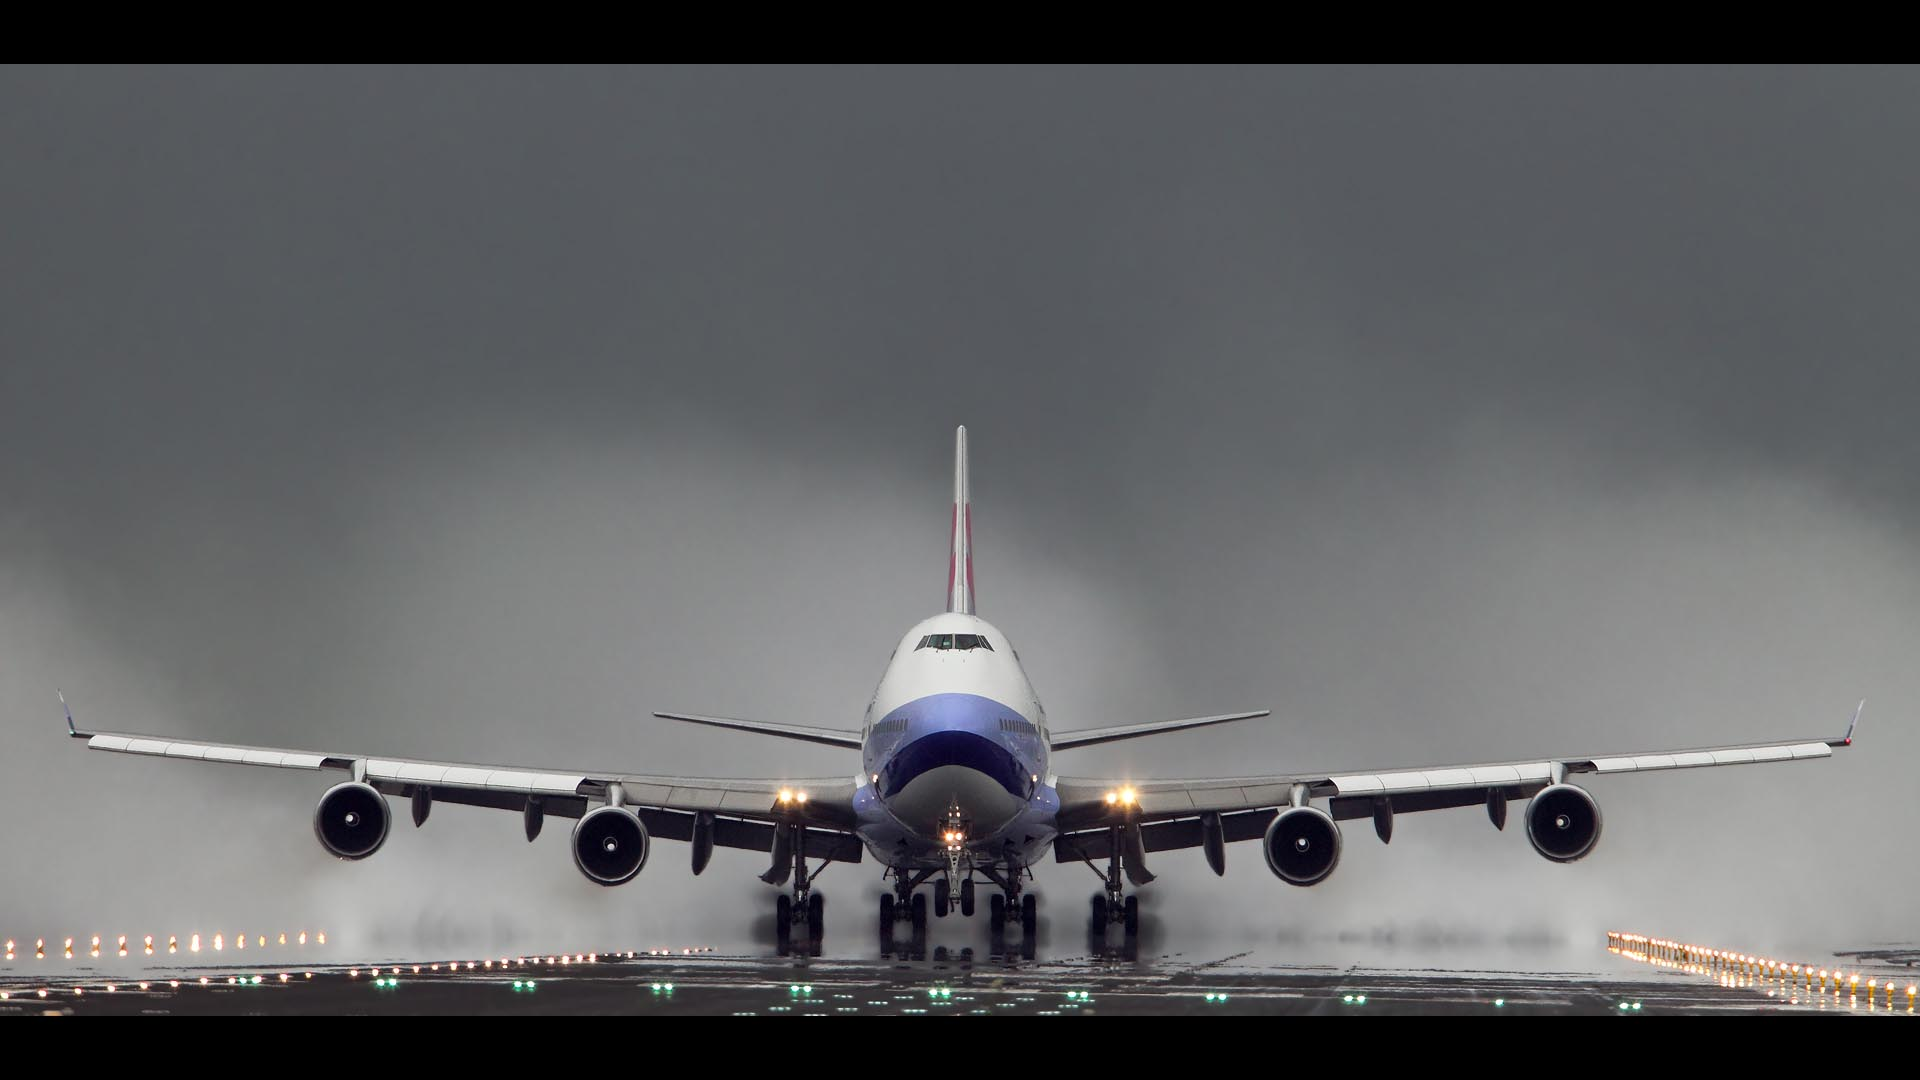 1920x1080 - Boeing 747 Wallpapers 29